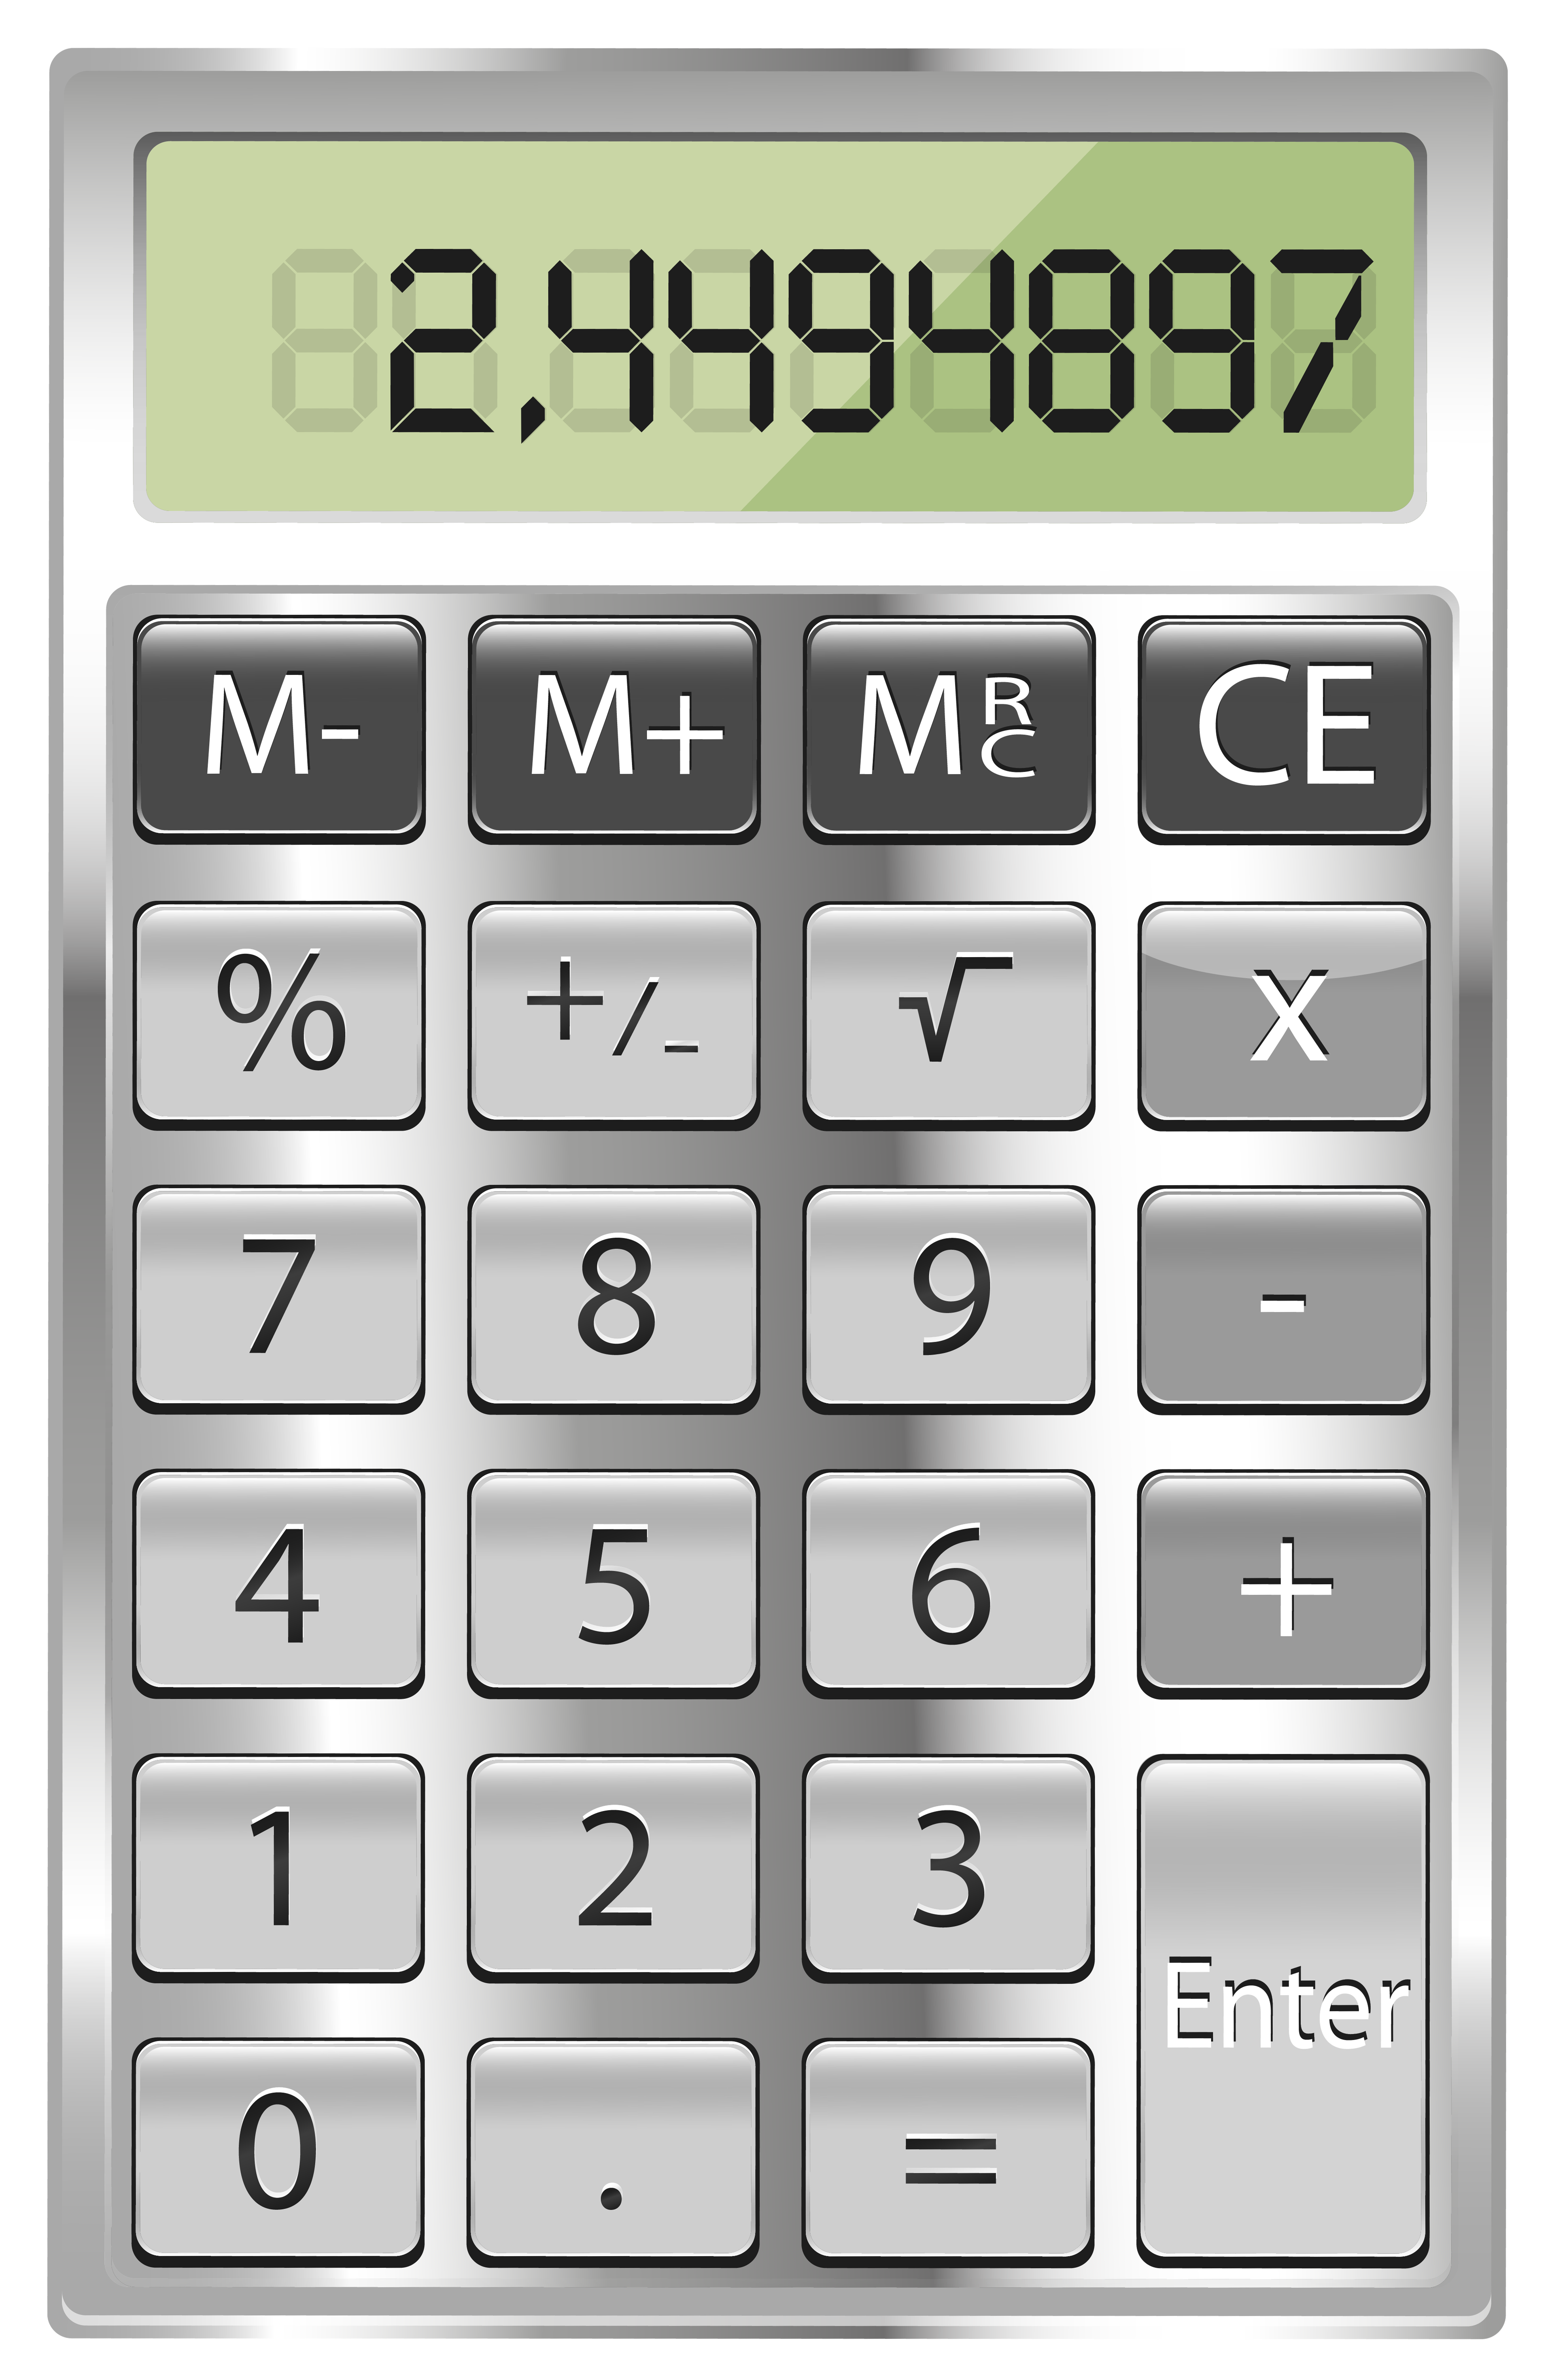 Png image gallery yopriceville. Calculator clipart claculator